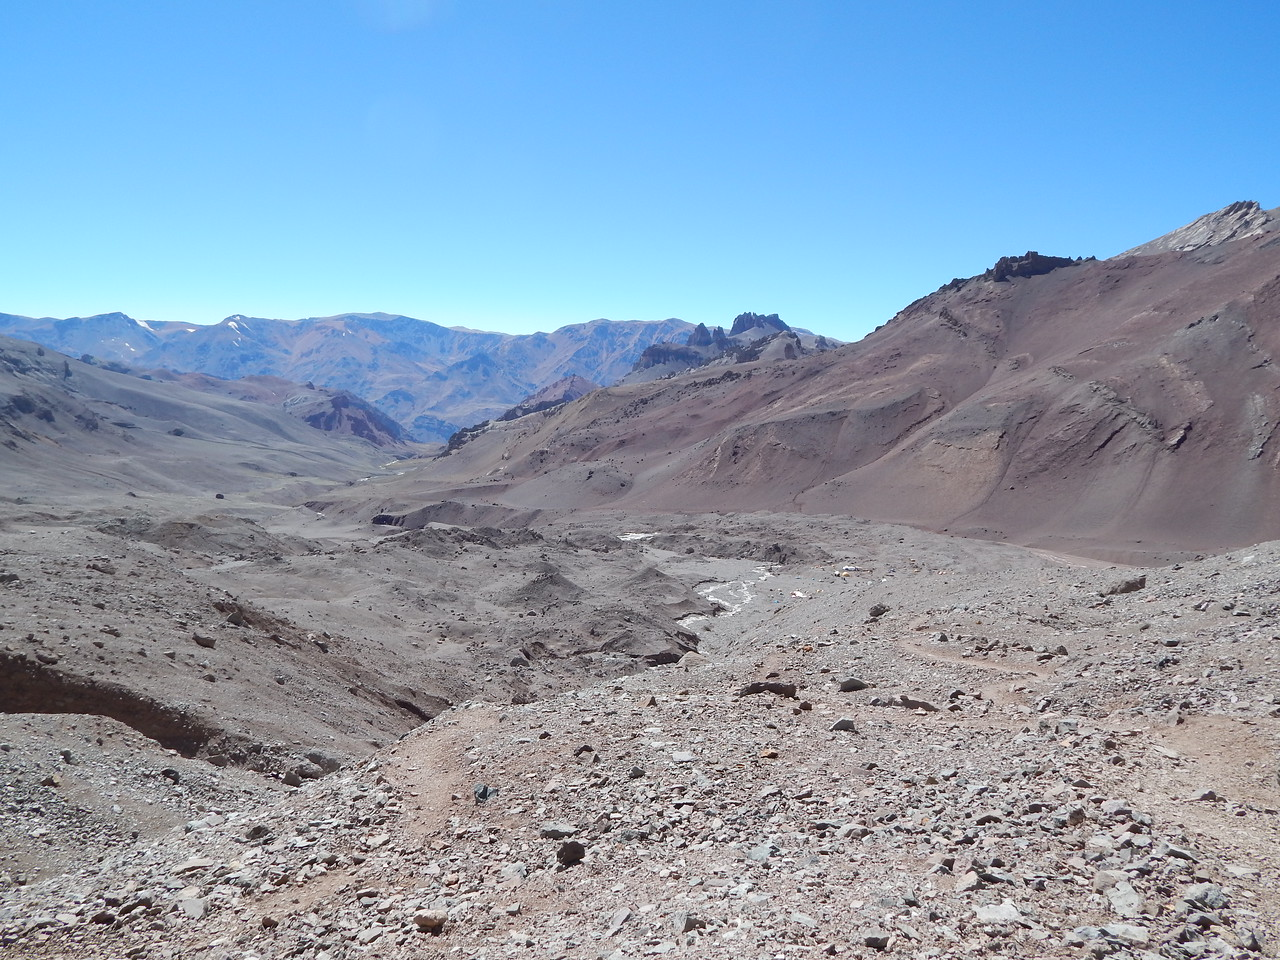 View from Camp 1 towards Base Camp